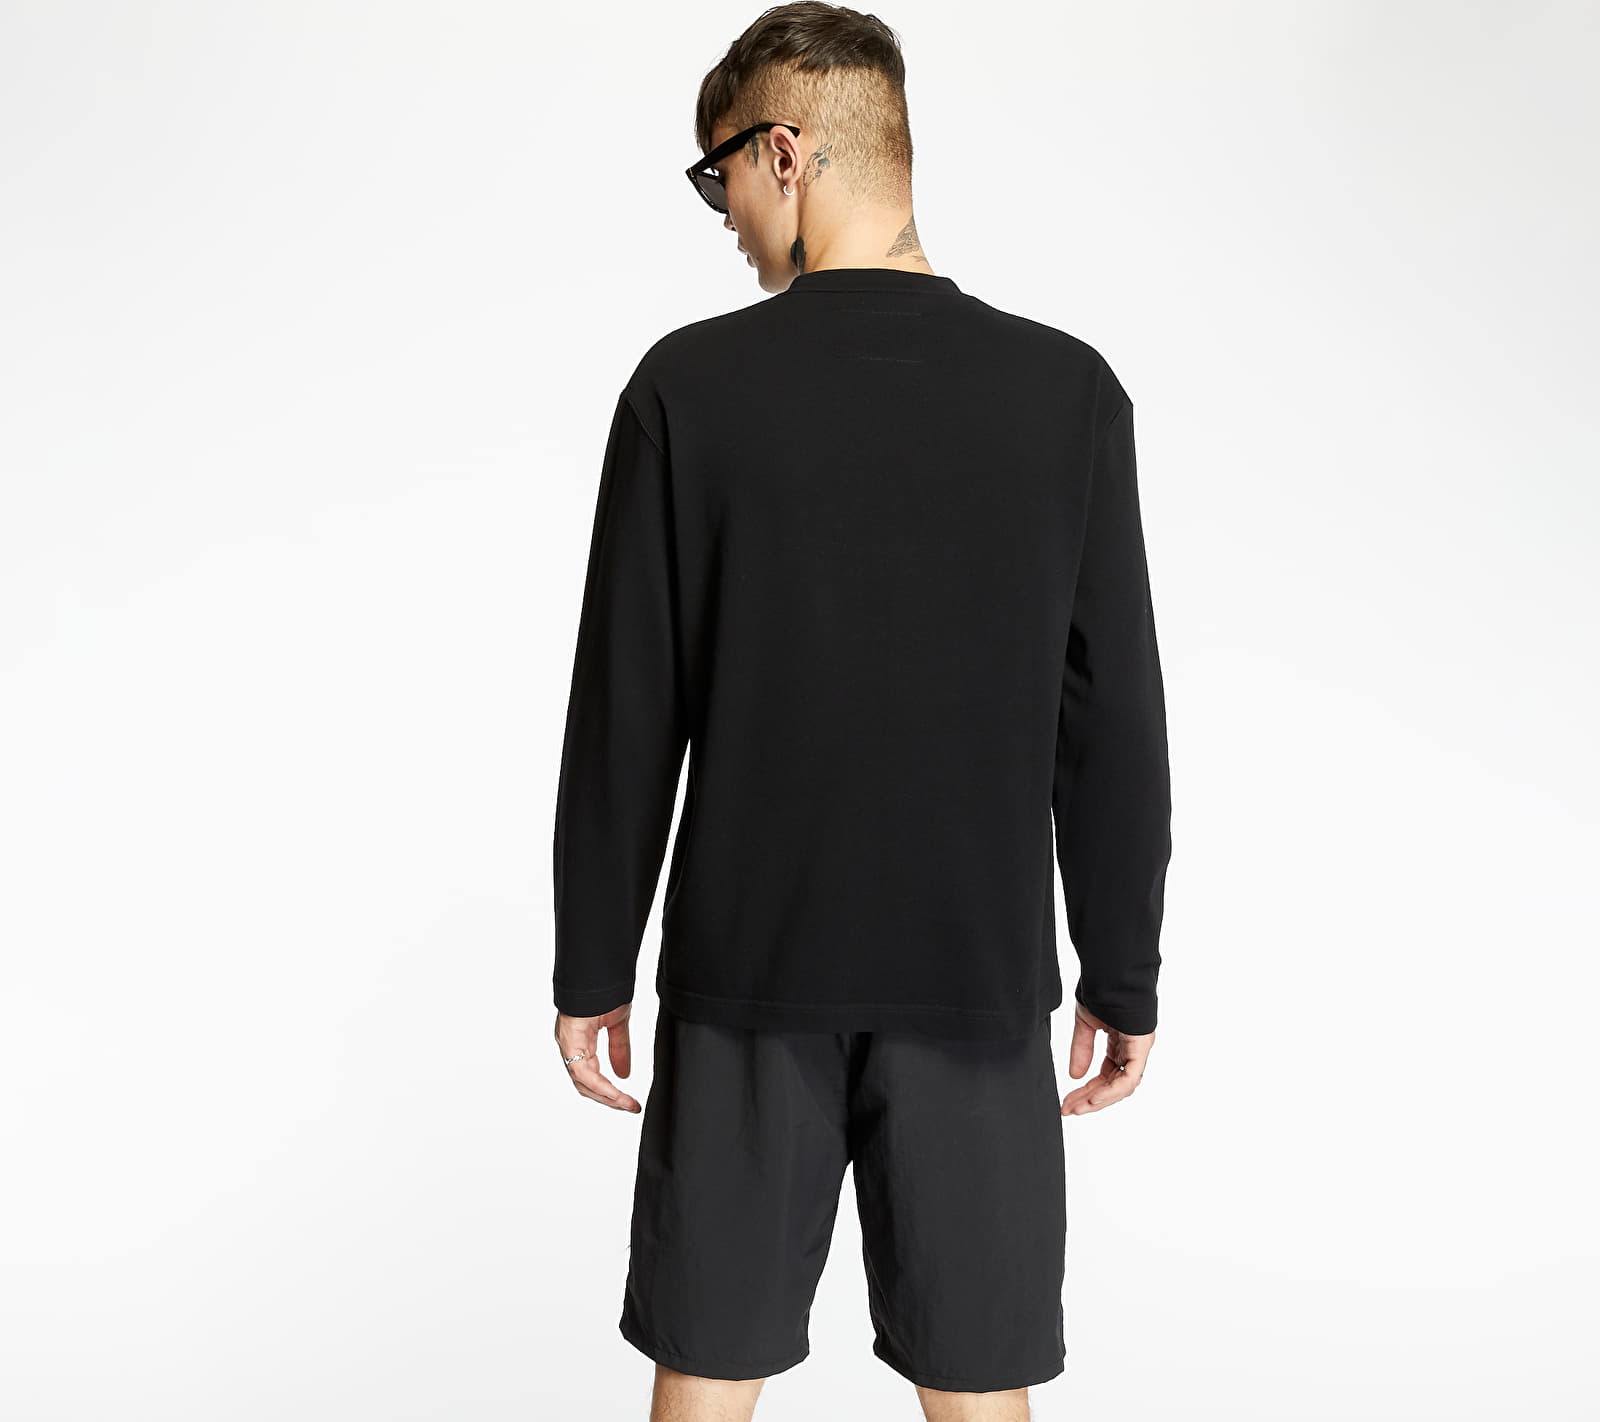 A-COLD-WALL* Glass Blower Long Sleeve Tee Black